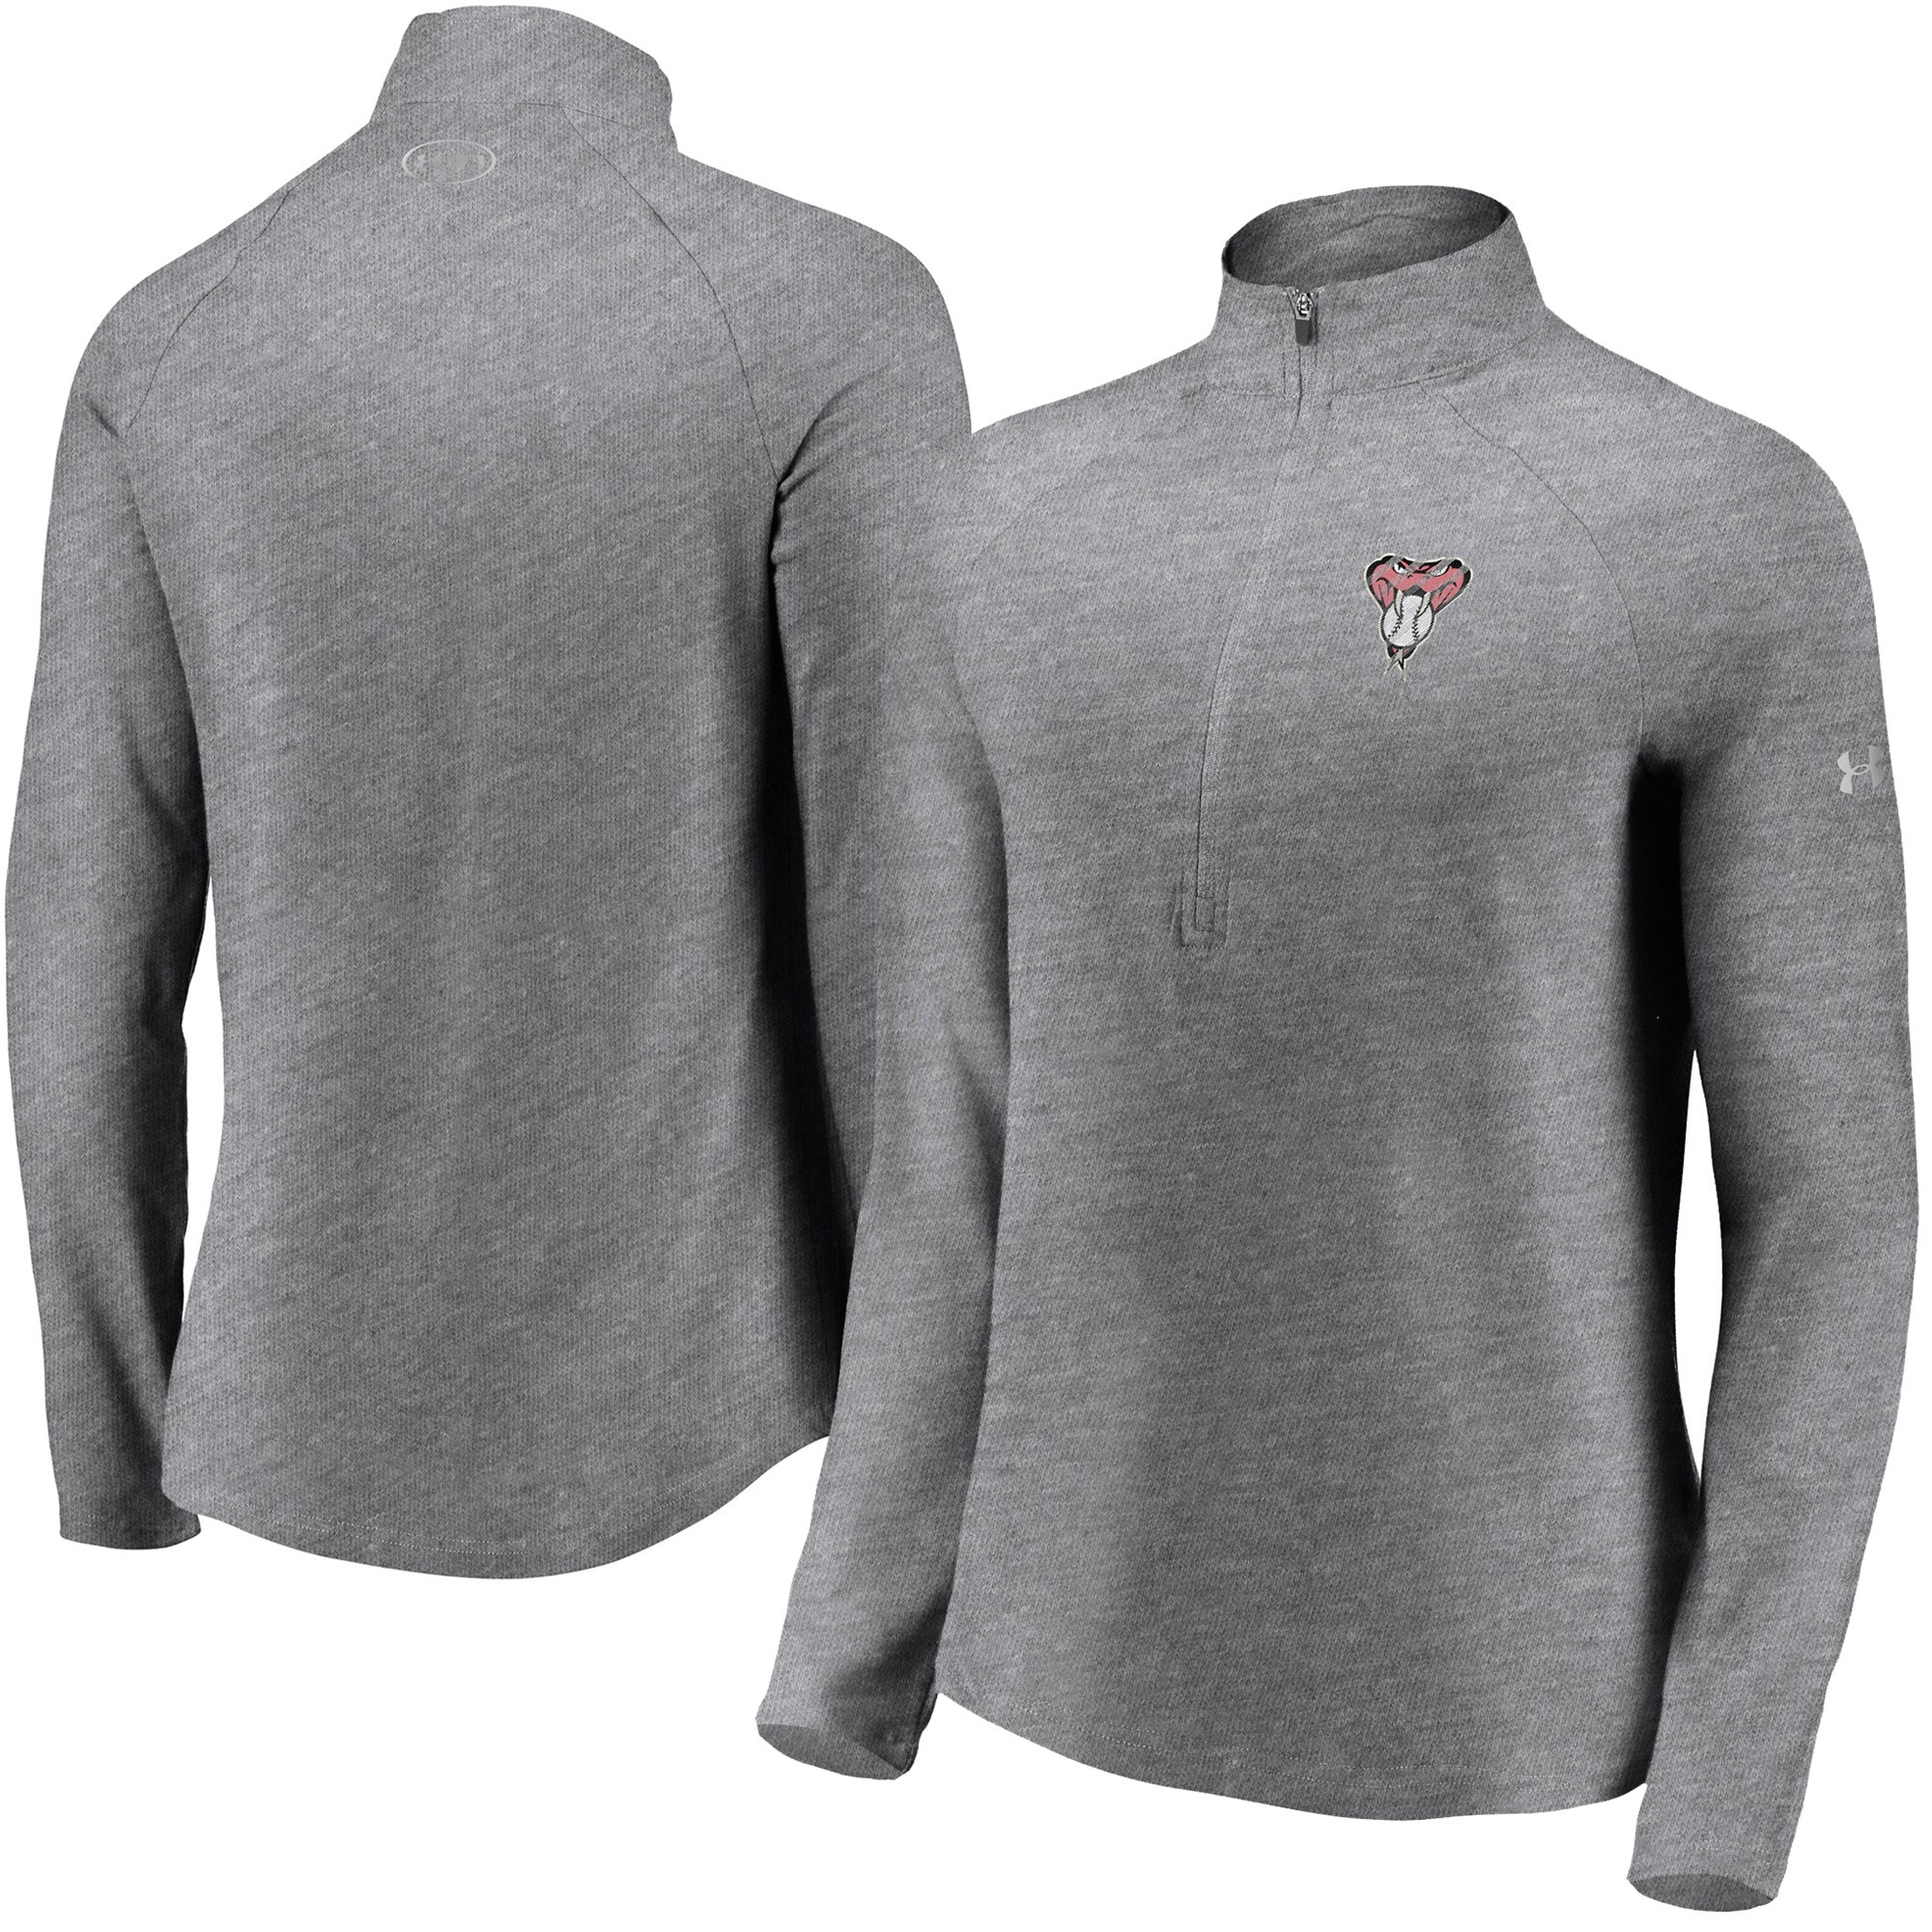 Arizona Diamondbacks Under Armour Women's Passion Alternate Performance Tri-Blend Raglan Half-Zip Pullover Jacket - Heathered Gray